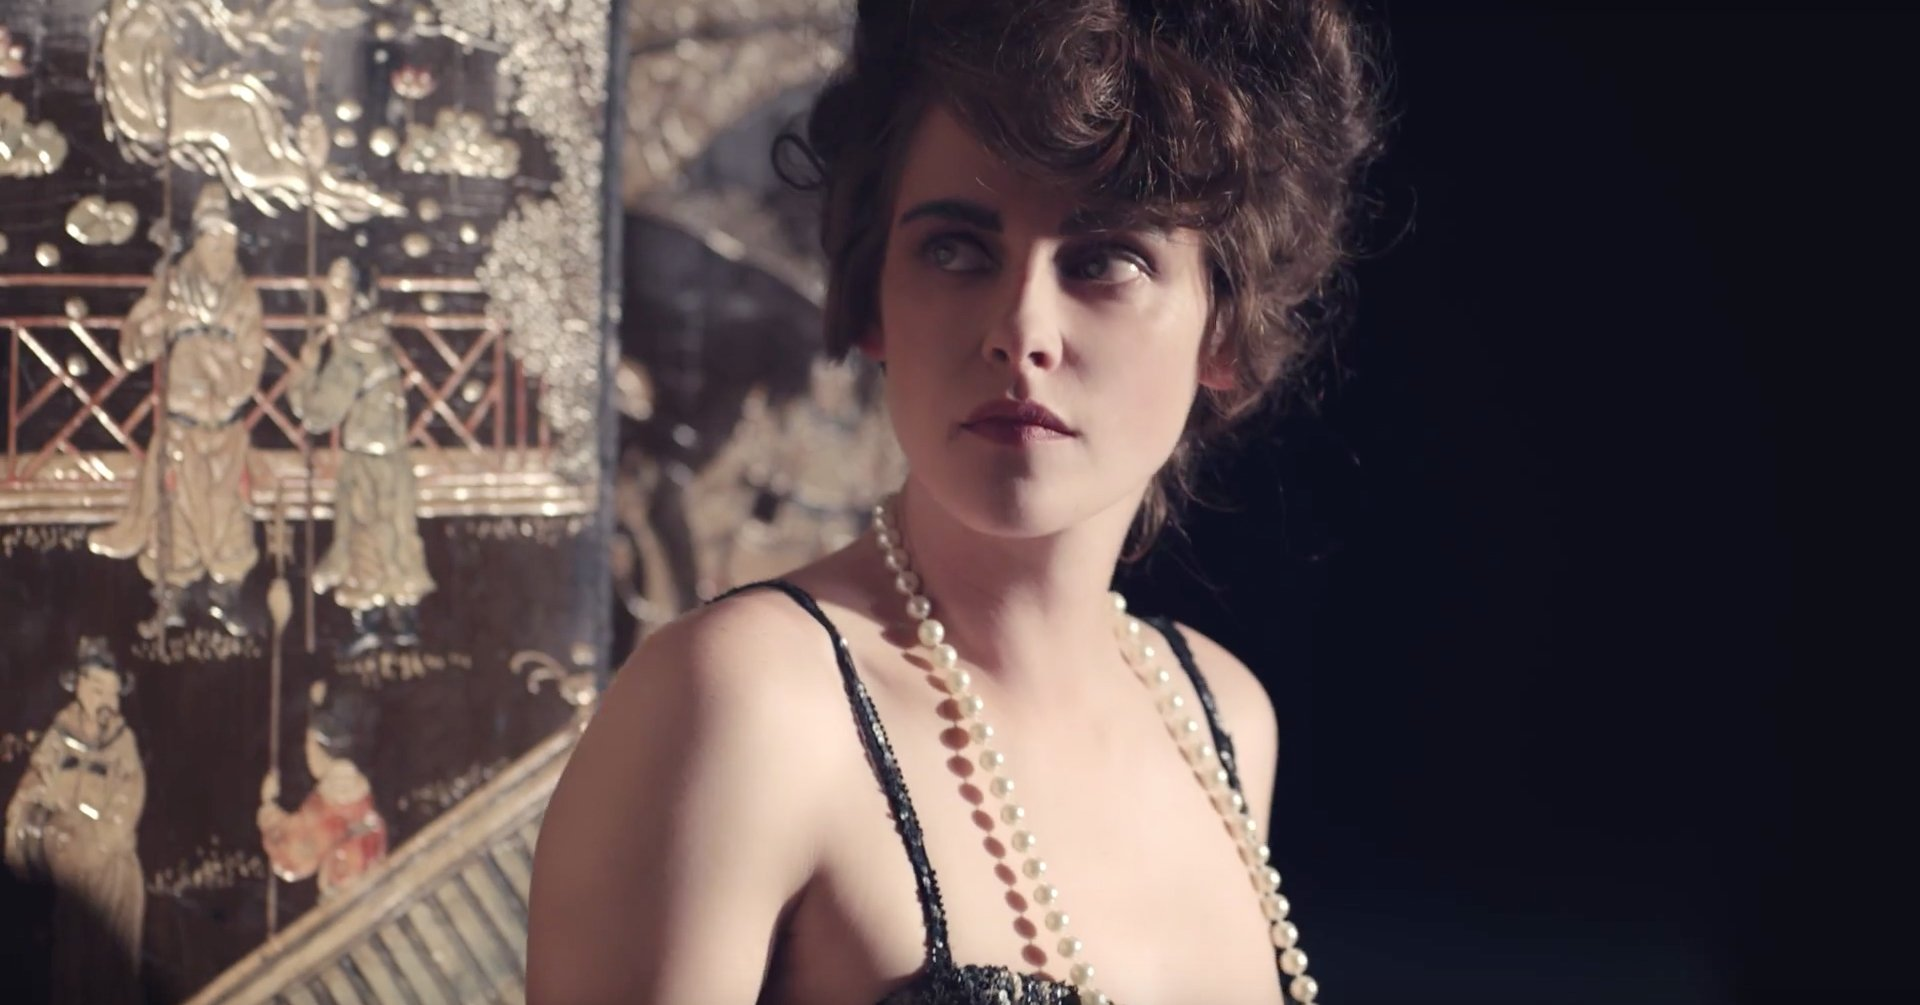 Watch Kristen Stewart Play a Diva Actress and Sing Badly in Karl Lagerfeld's New Short Film: https://t.co/tBjAf1zuz3 https://t.co/4rBFJi3k1e